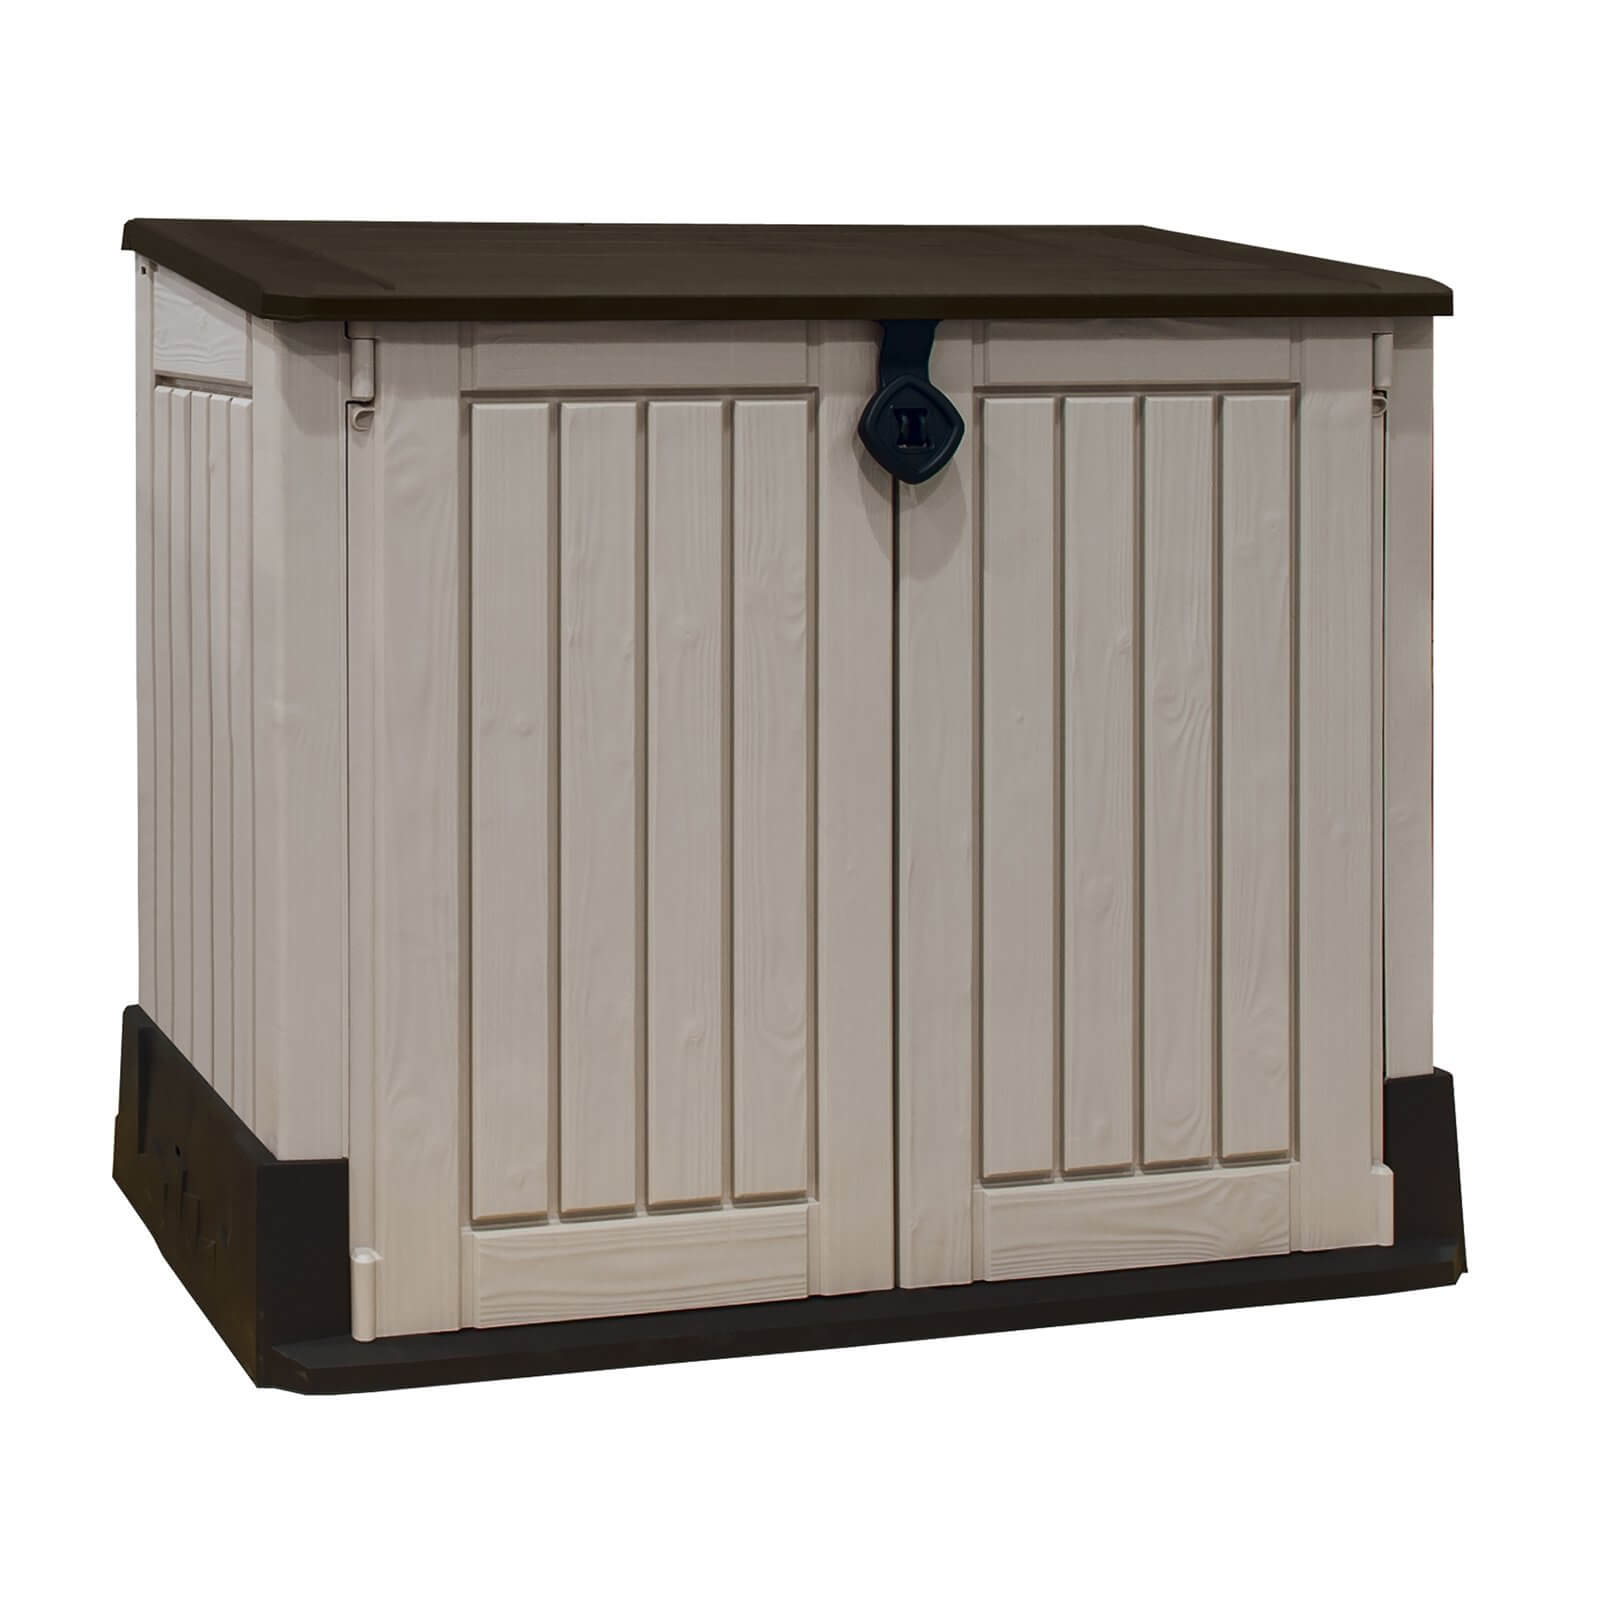 Keter Store It Out Midi Outdoor Garden Storage Shed 845L - Beige/Brown